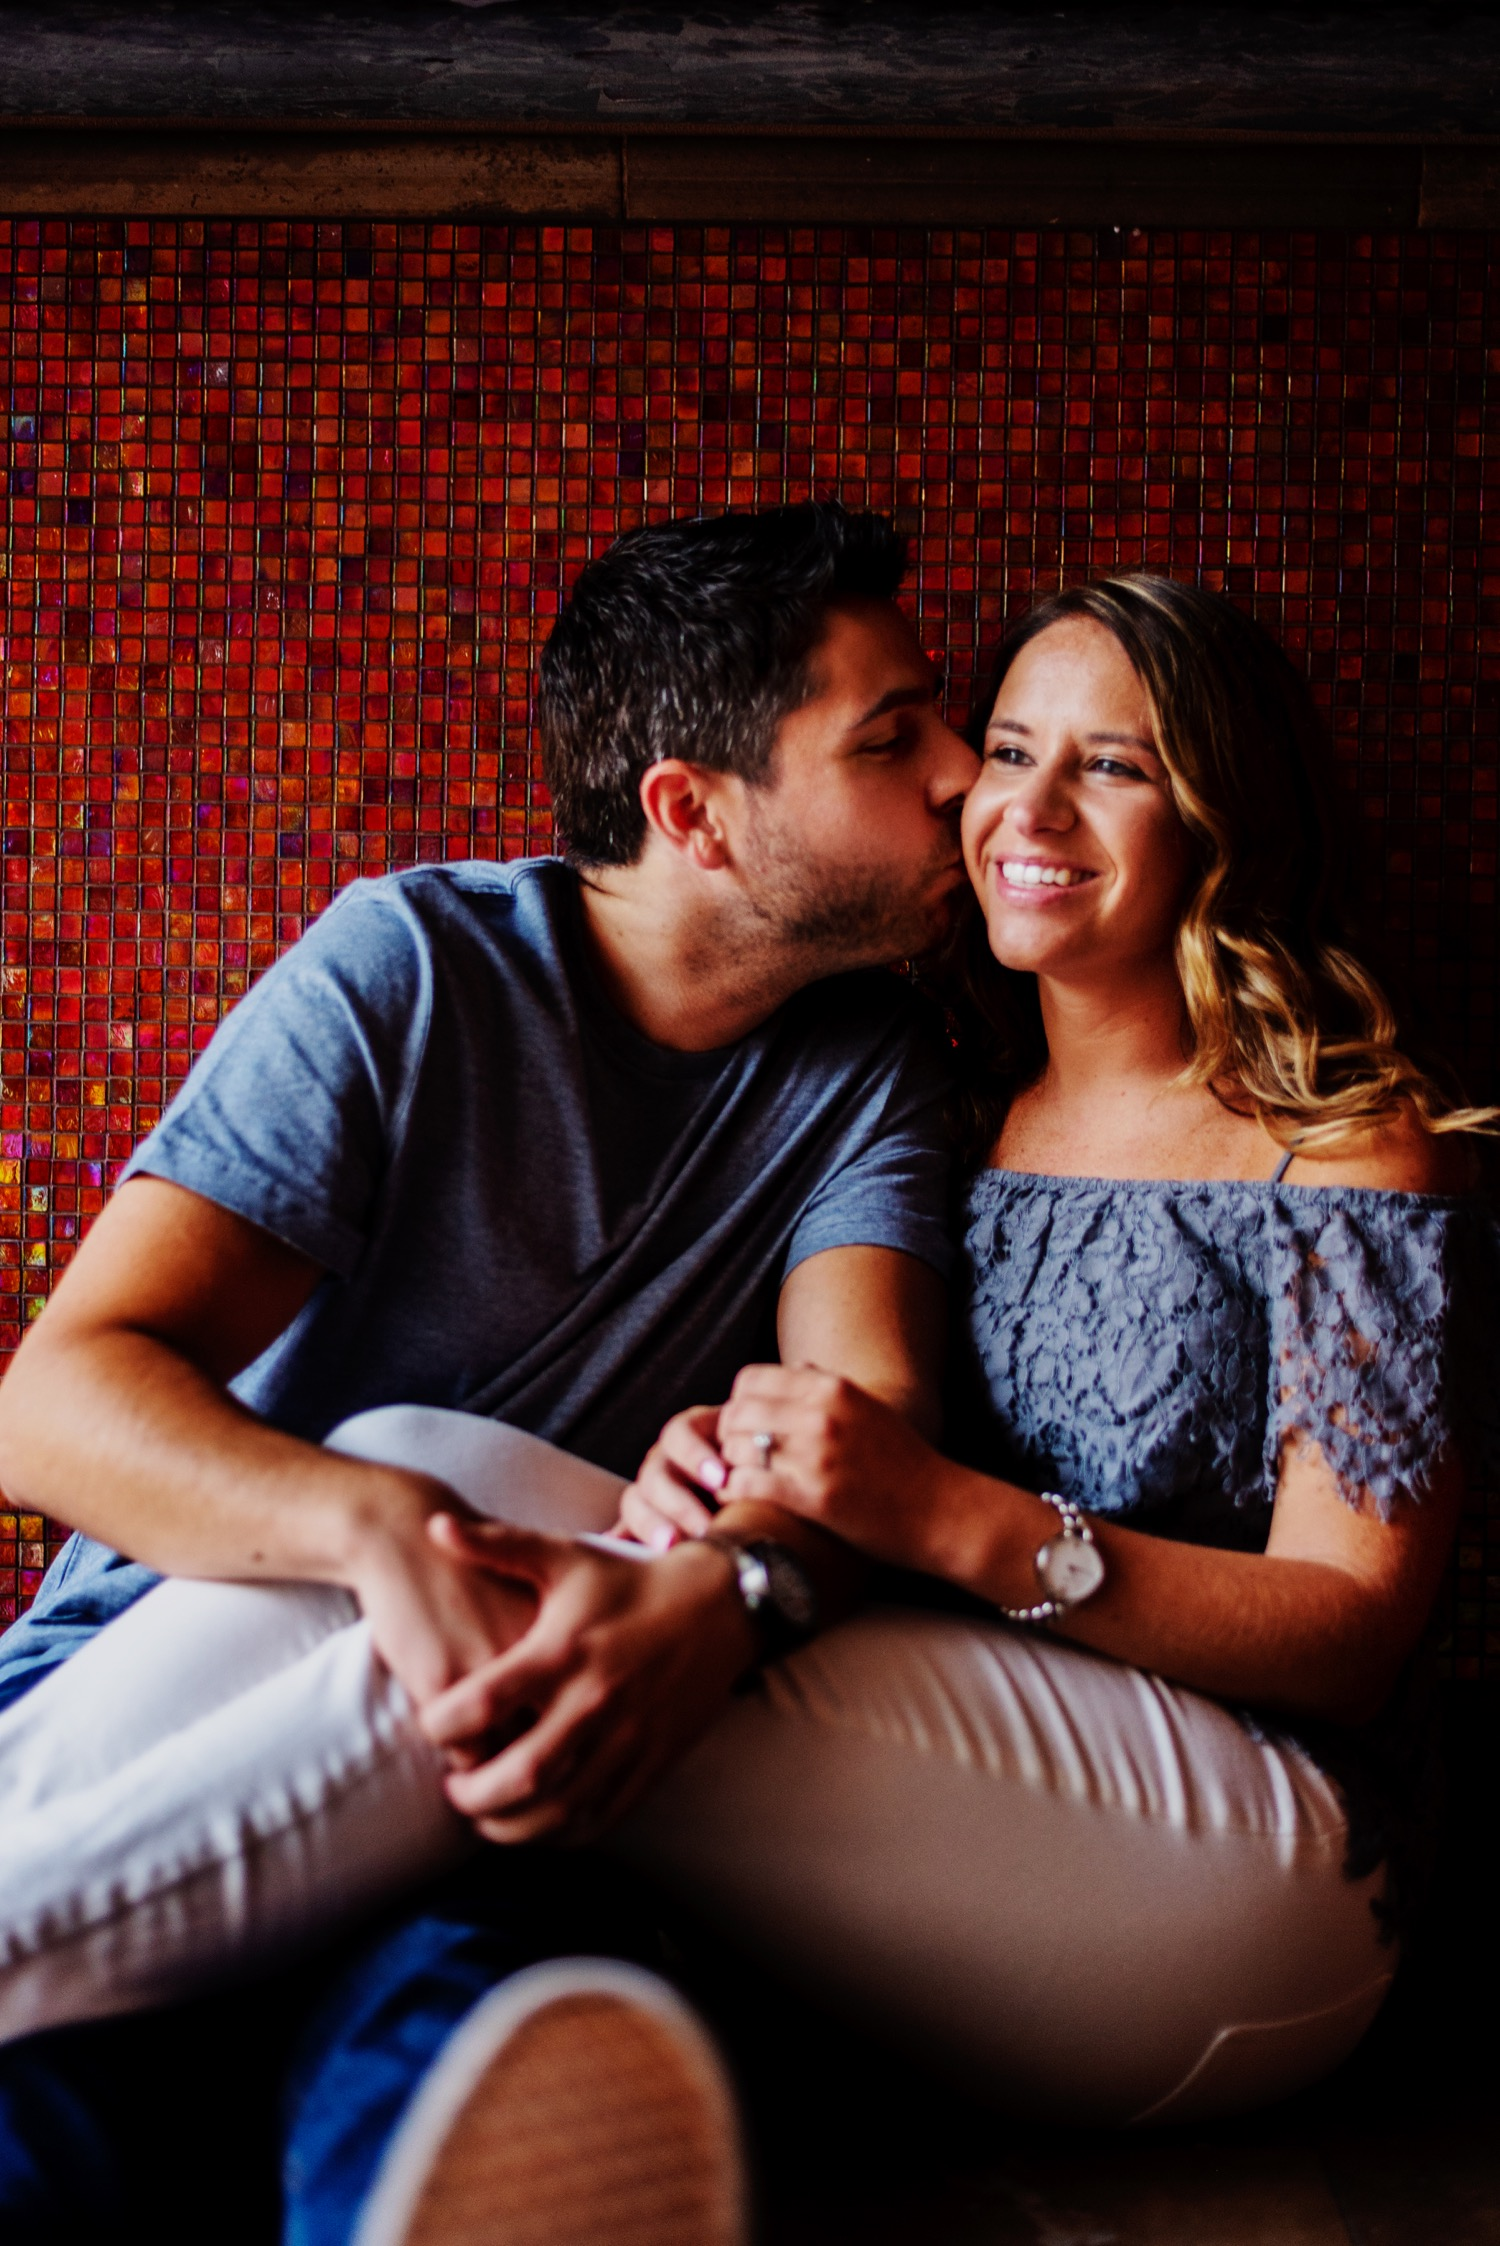 37_Margaret-Andrew-Chicago-EngagementSession_1074_engagementsession_engaged_chicagophotographer.jpg